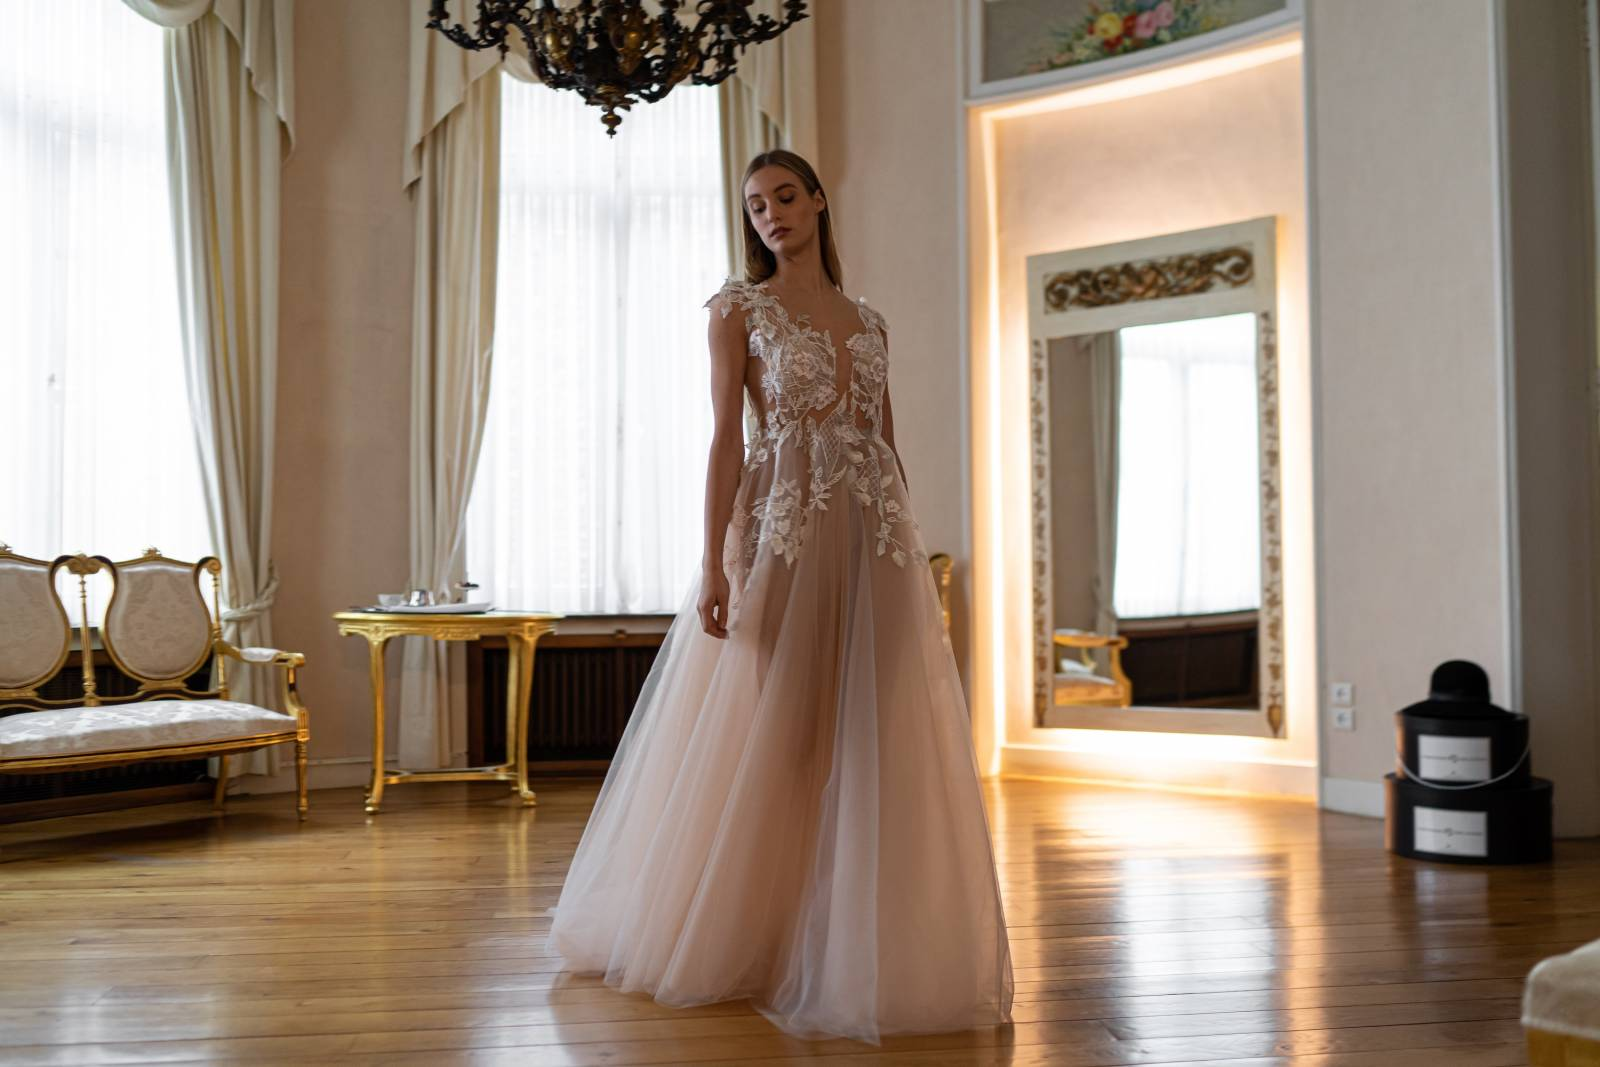 Veerle Praet Couture - Trouwjurken - Bruidsjurken - Trouwkleed - Suitekledij - House of Weddings - 6